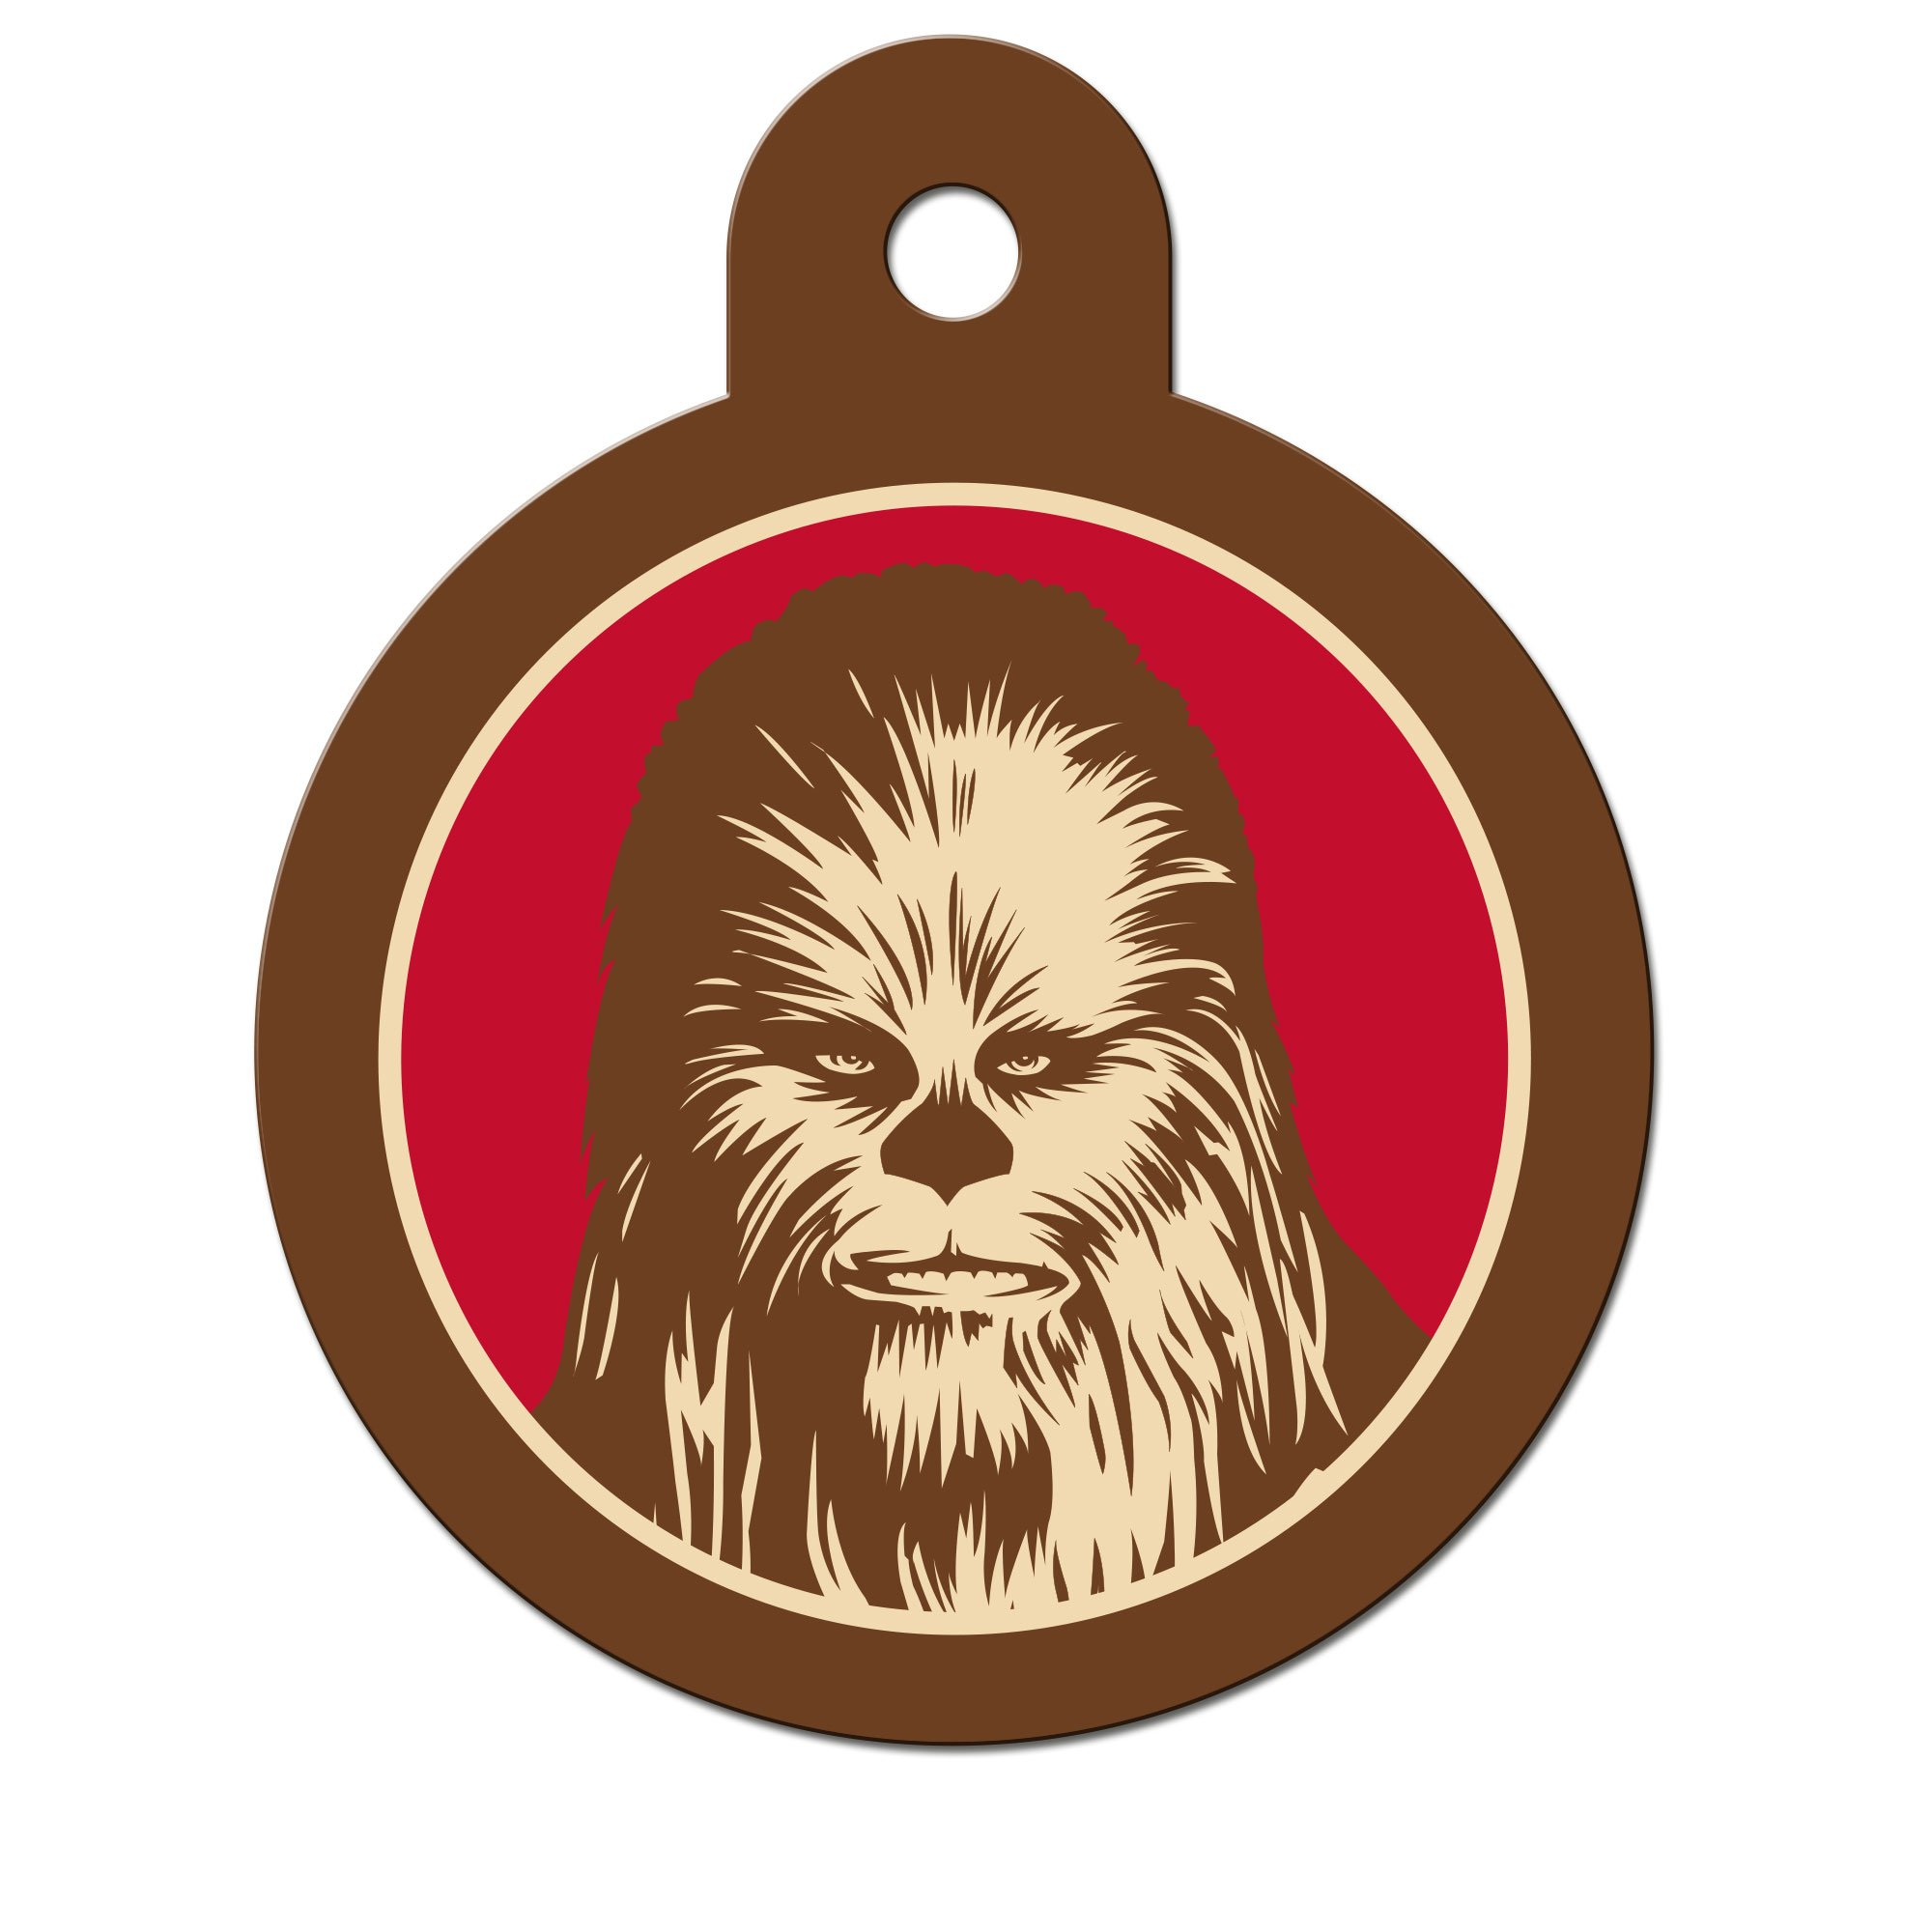 STAR WARS Chewbacca Engravable Pet I.D. Tag, Large | Petco